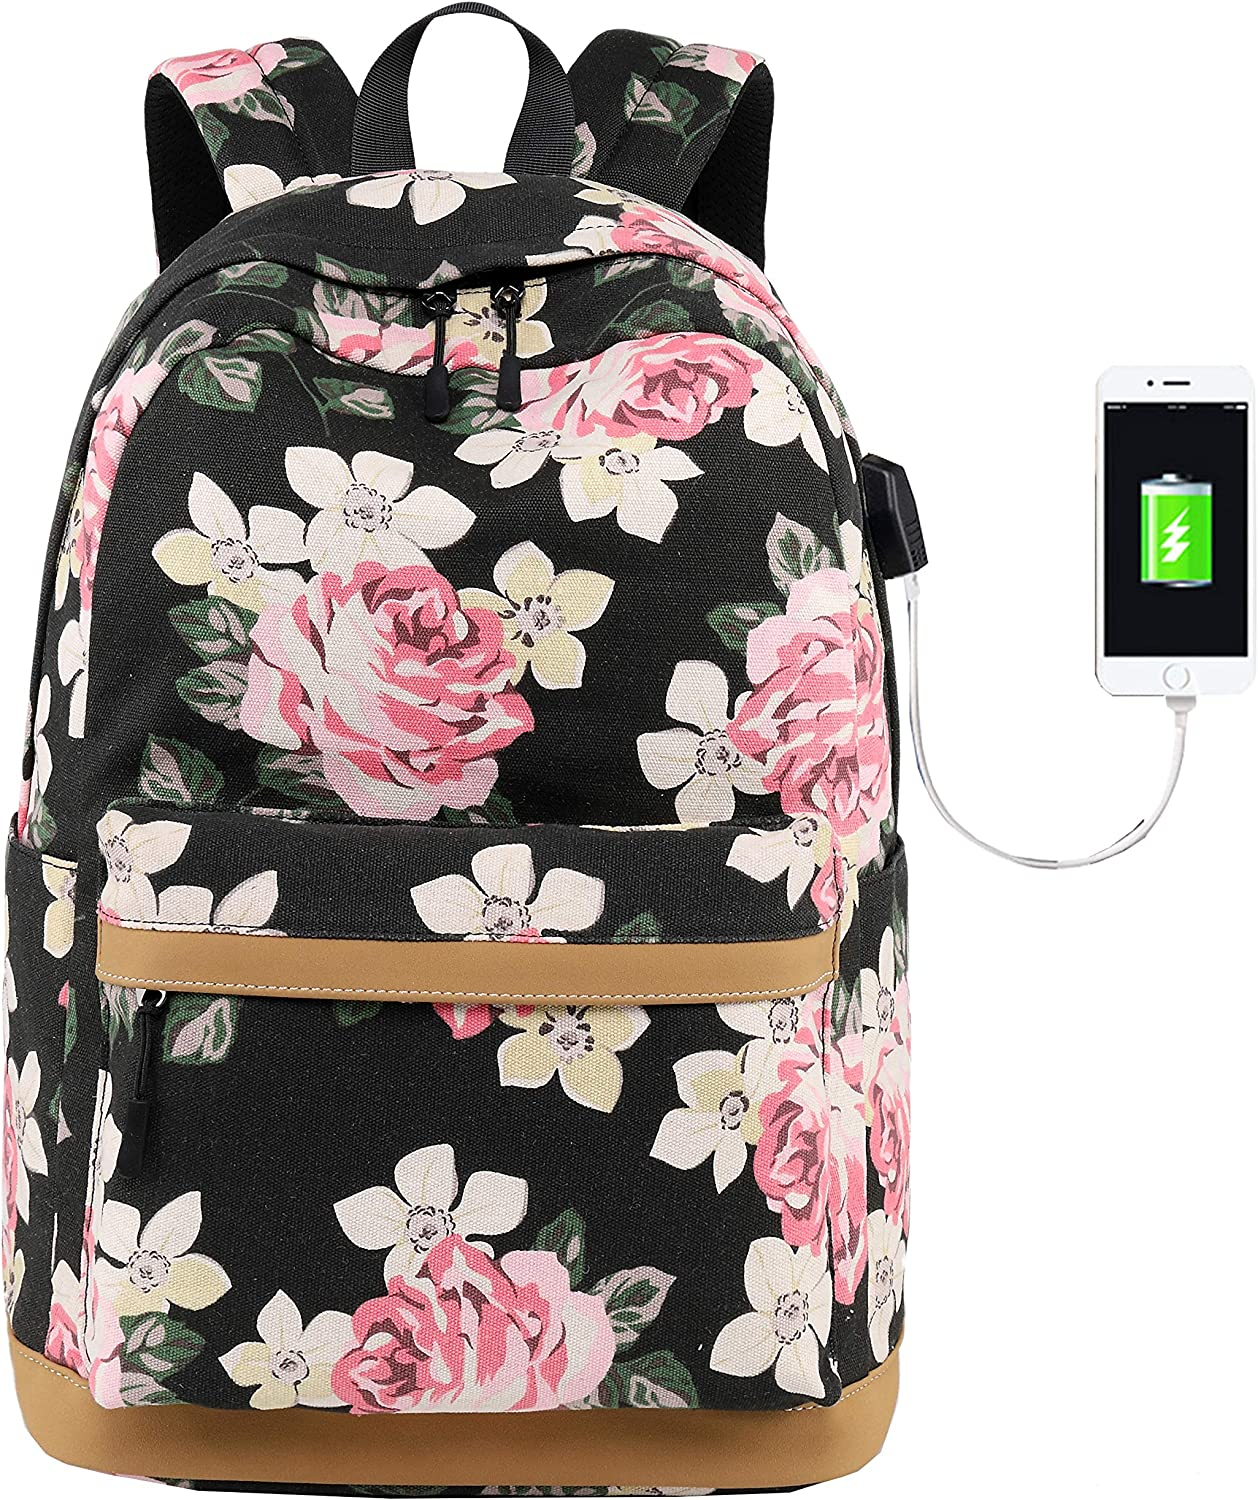 Oarencol Beautiful Tulips Colorful Flower Painting Art Backpack School Book Bag Travel Hiking Camping Laptop Daypack